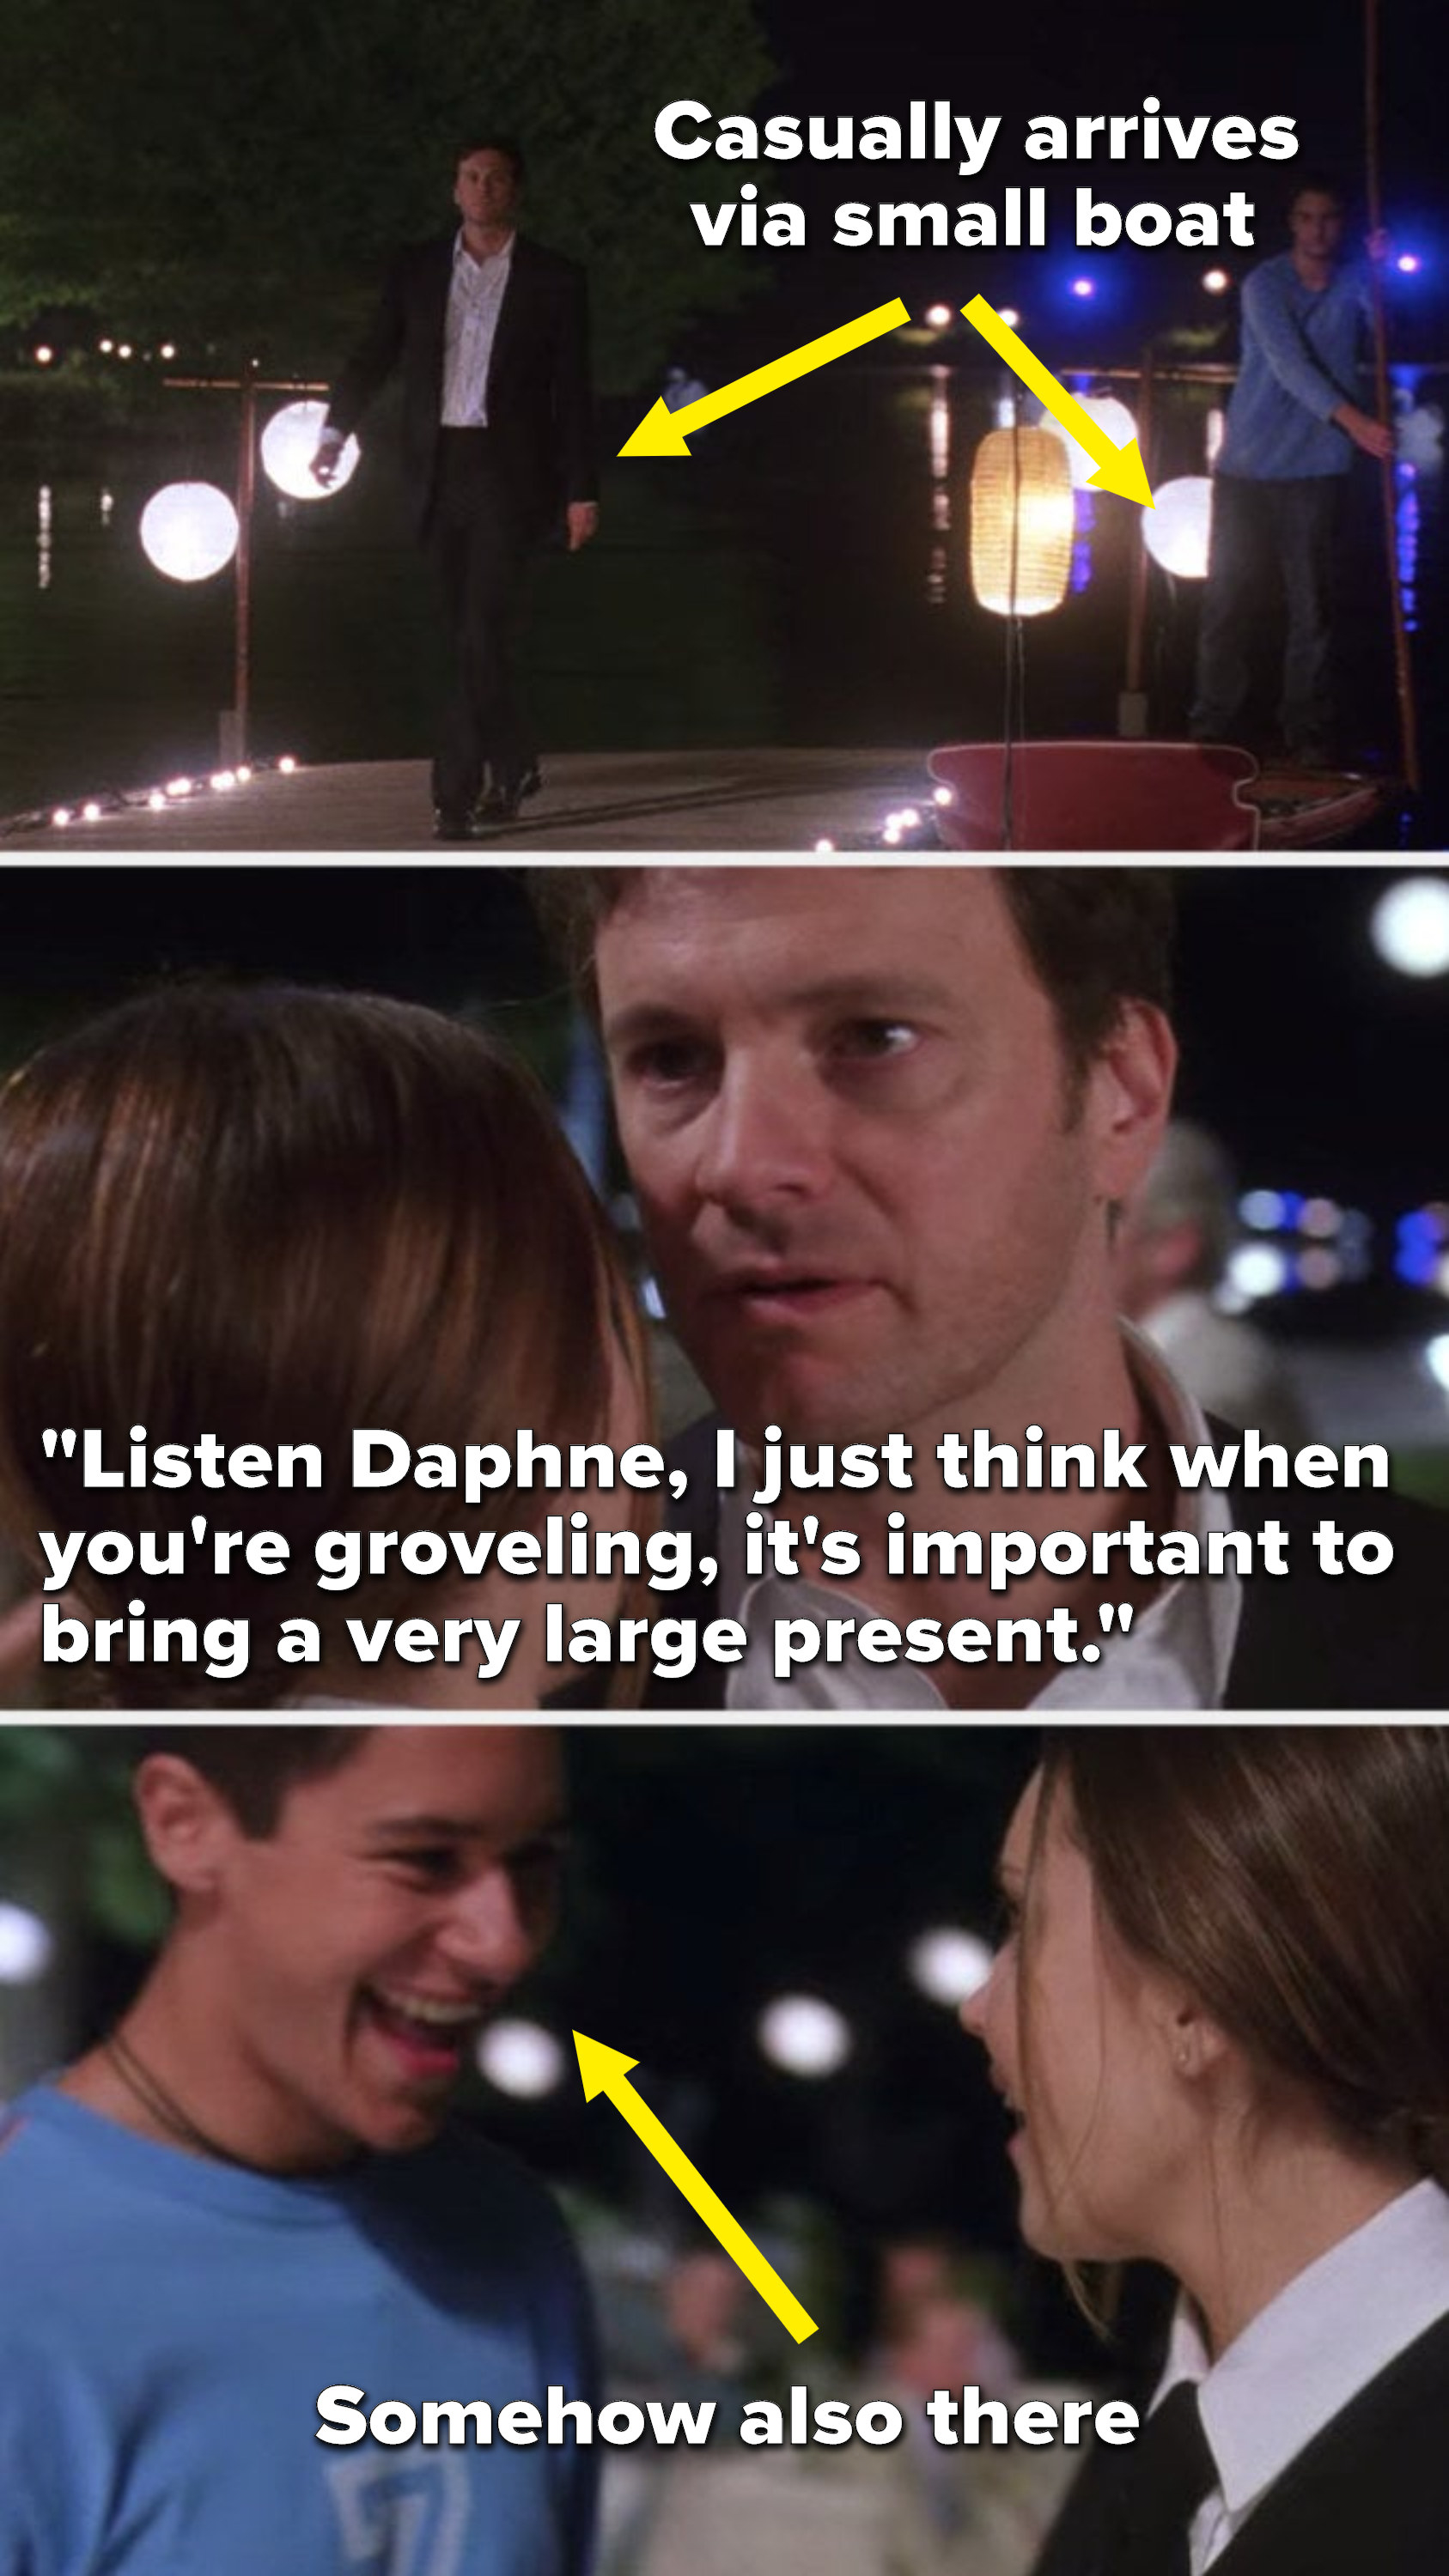 """Henry casually arrives via small boat and then says to Daphne while they dance, """"Listen Daphne, I just think when you're groveling, it's important to bring a very large present,"""" and Daphne's love interest is somehow behind her"""